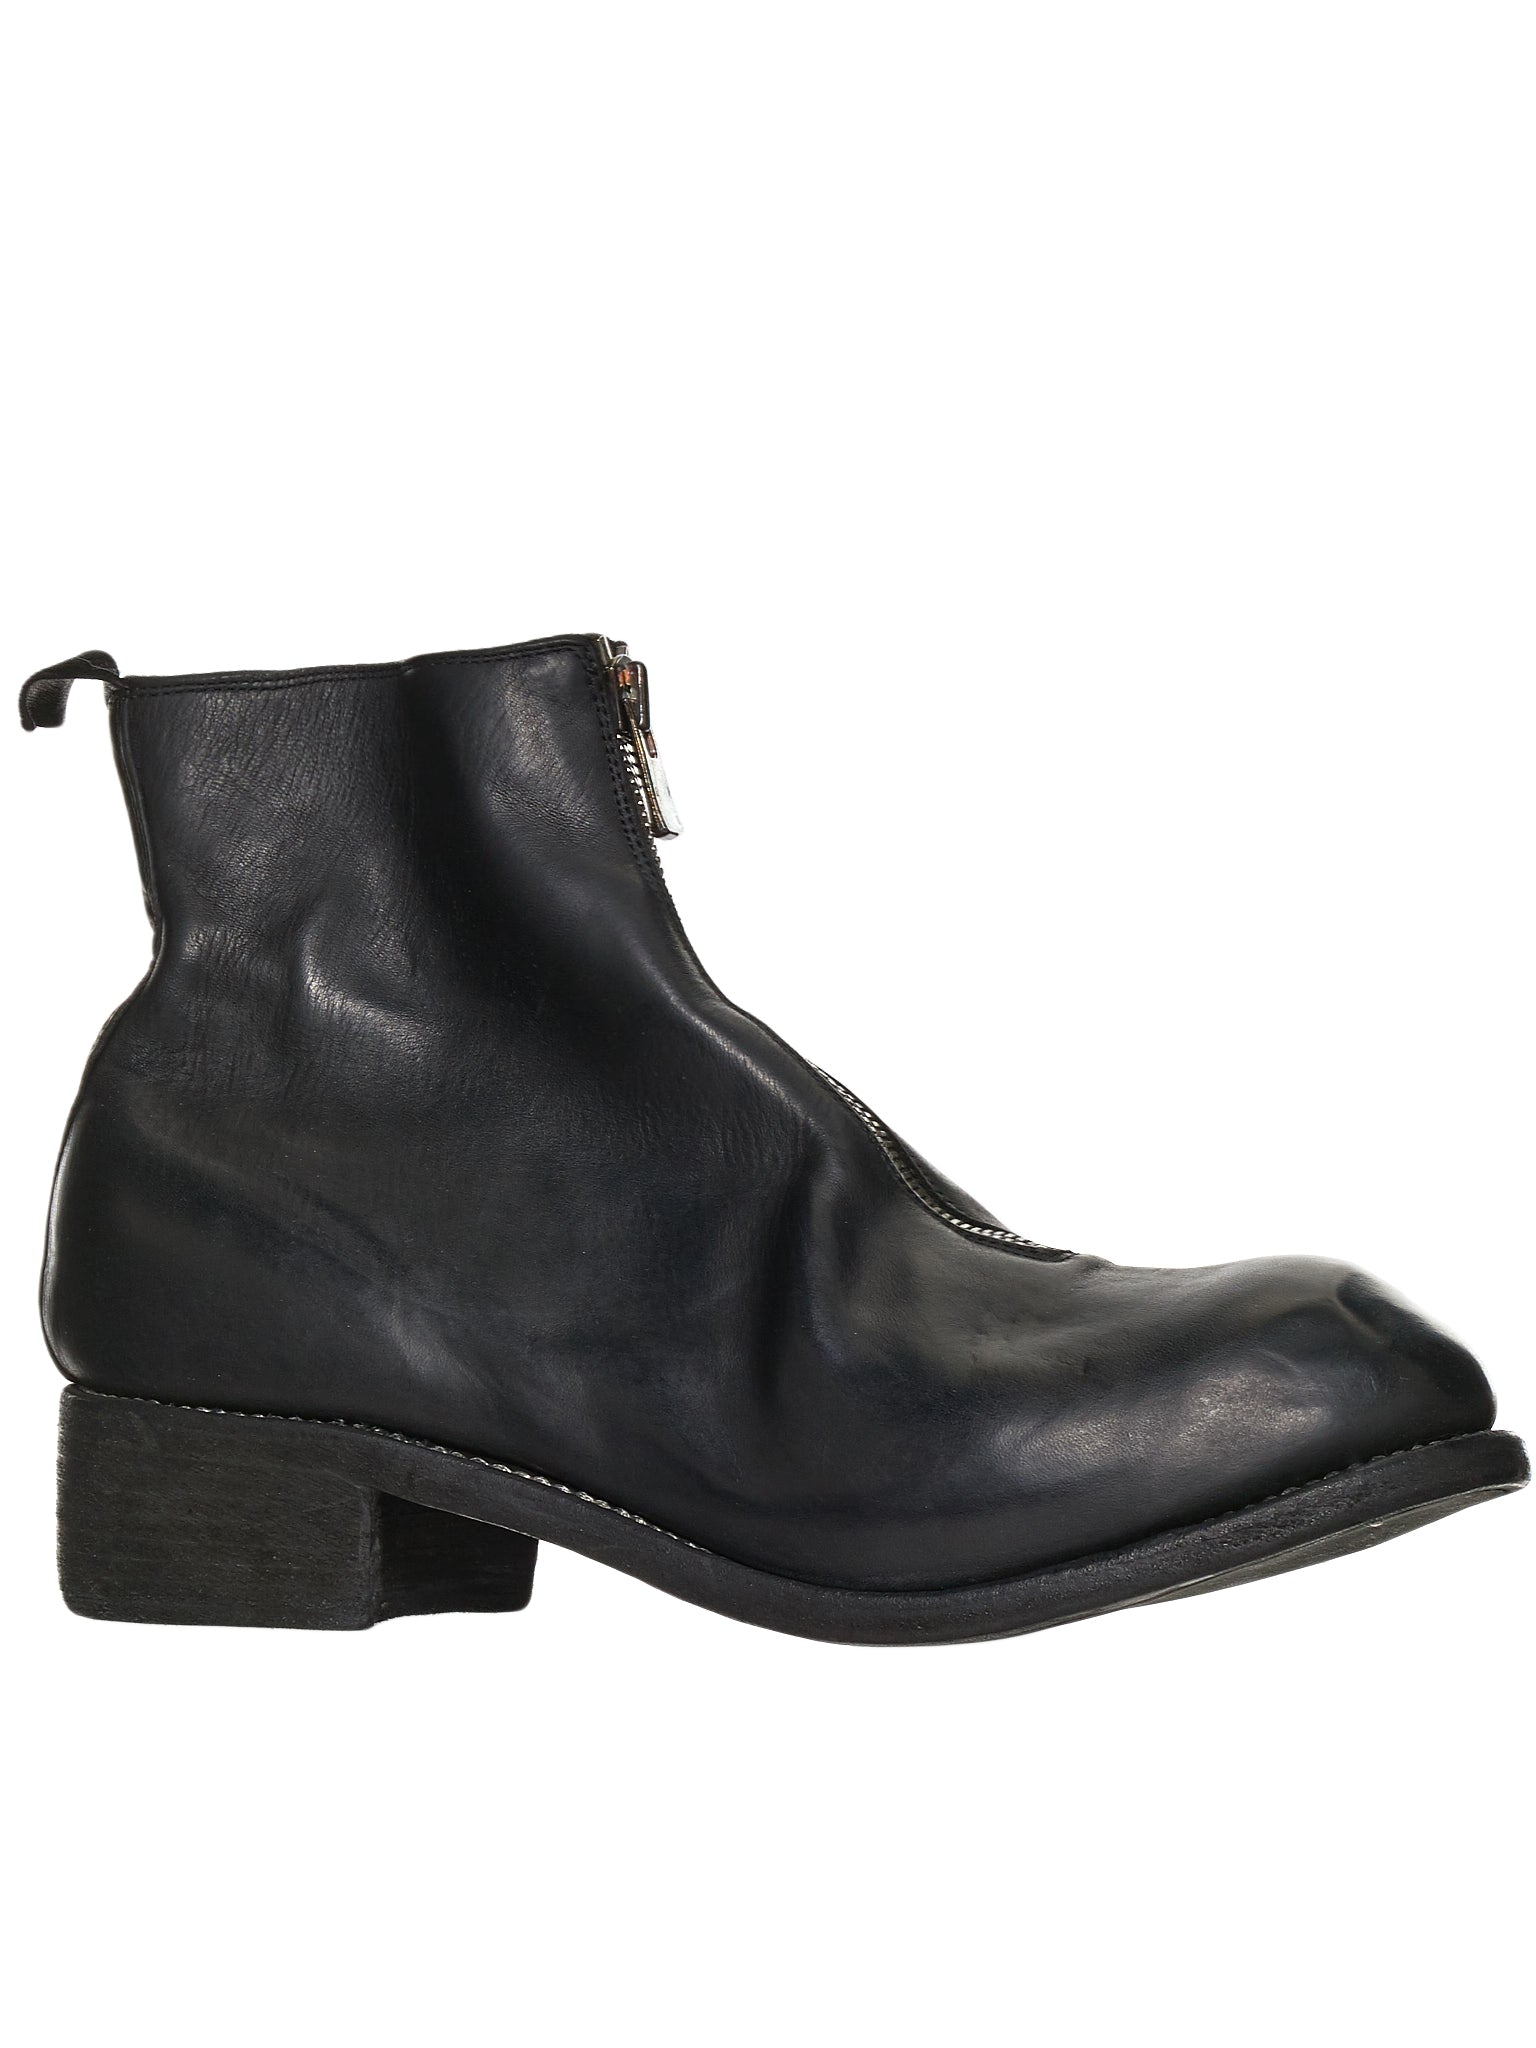 PL1 Horse Leather Boot (PL1-HORSE-FG-BLACK)